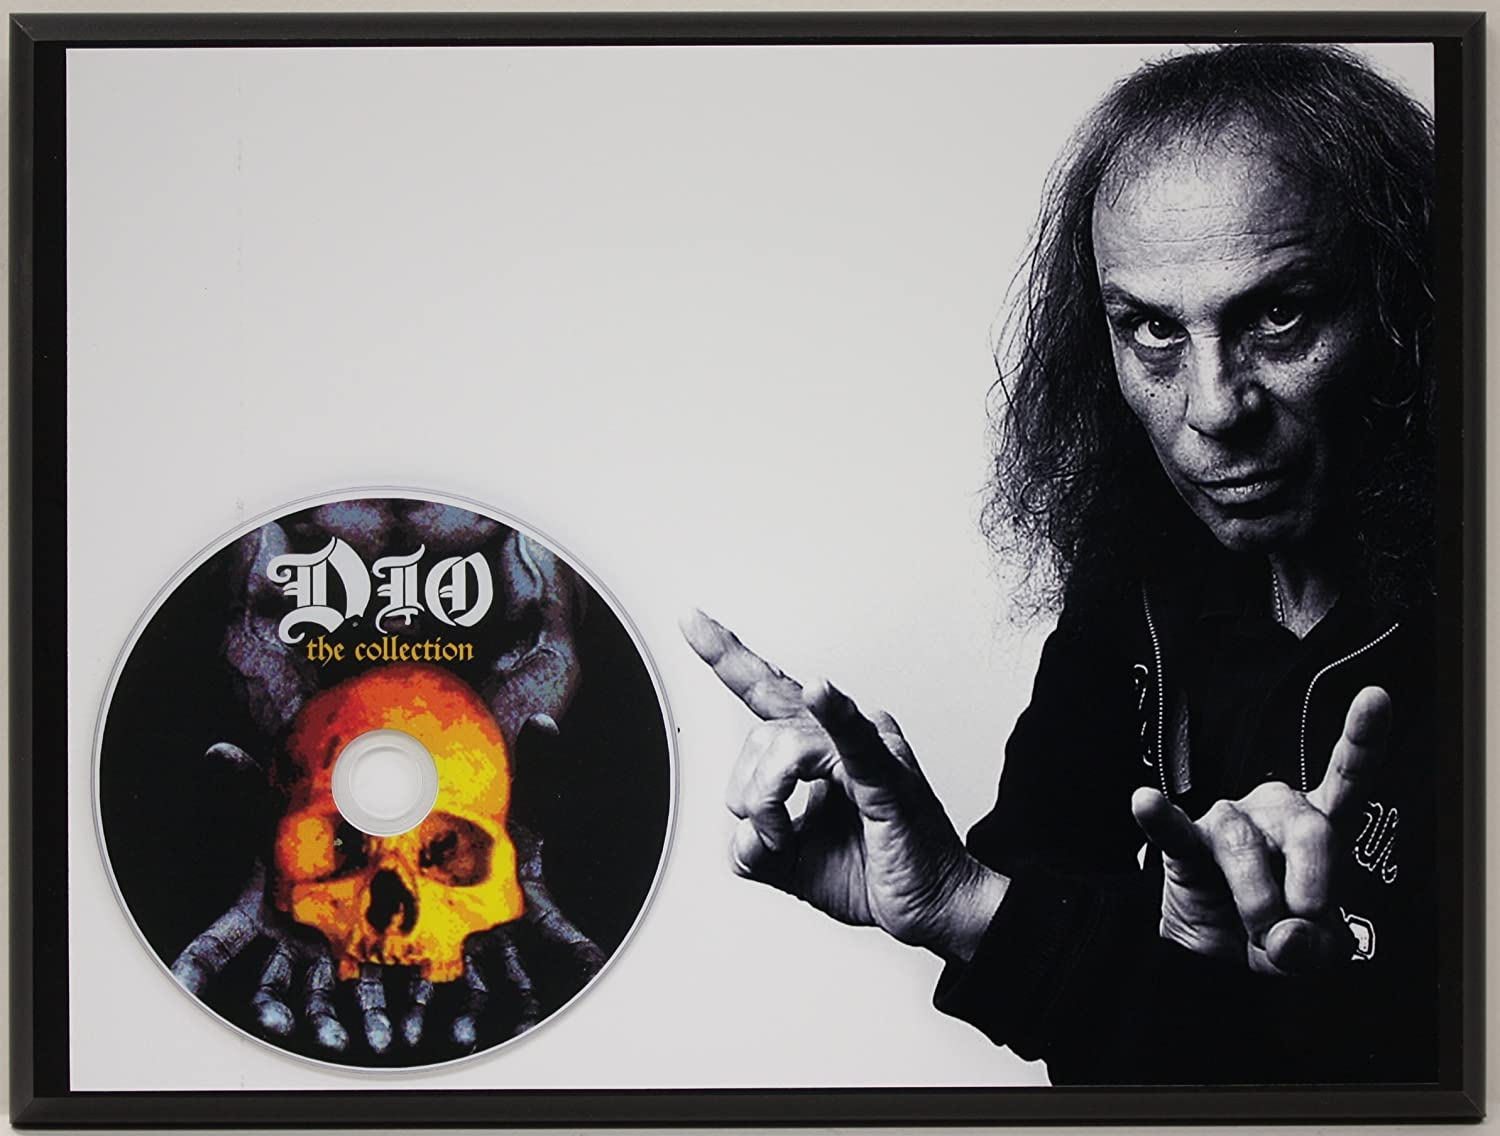 Dio Limited Edition Picture Disc CD Rare Collectible Music Display Gold Record Outlet